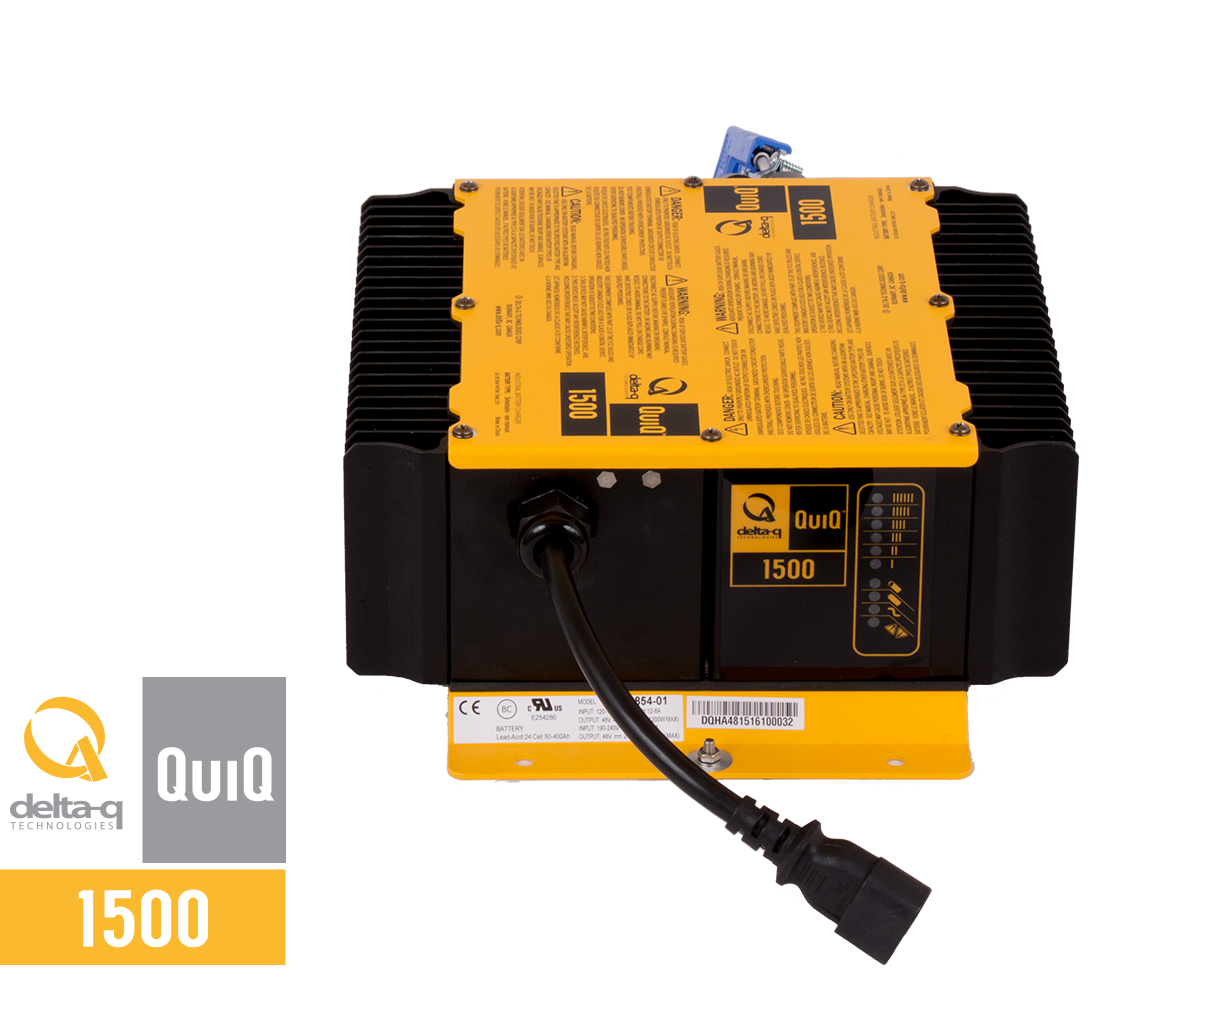 Quiq 1500 Industrial Battery Charger Delta Q Technologies Fastchargerwithcutoffcircuitpng Technical Specs